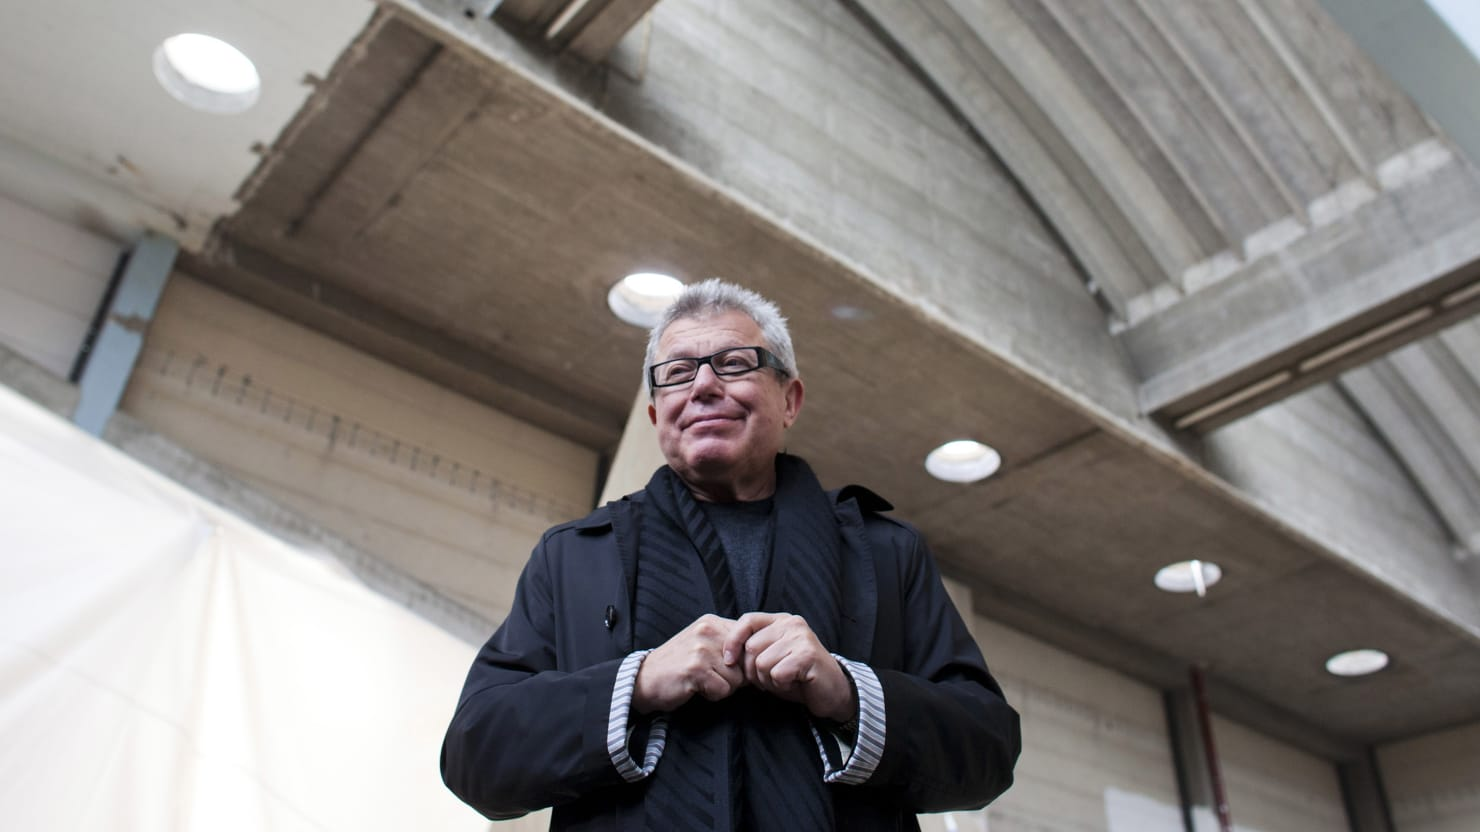 Architect Daniel Libeskind: How to Transform Horror Into Art, From Auschwitz and the Holocaust to 9/11